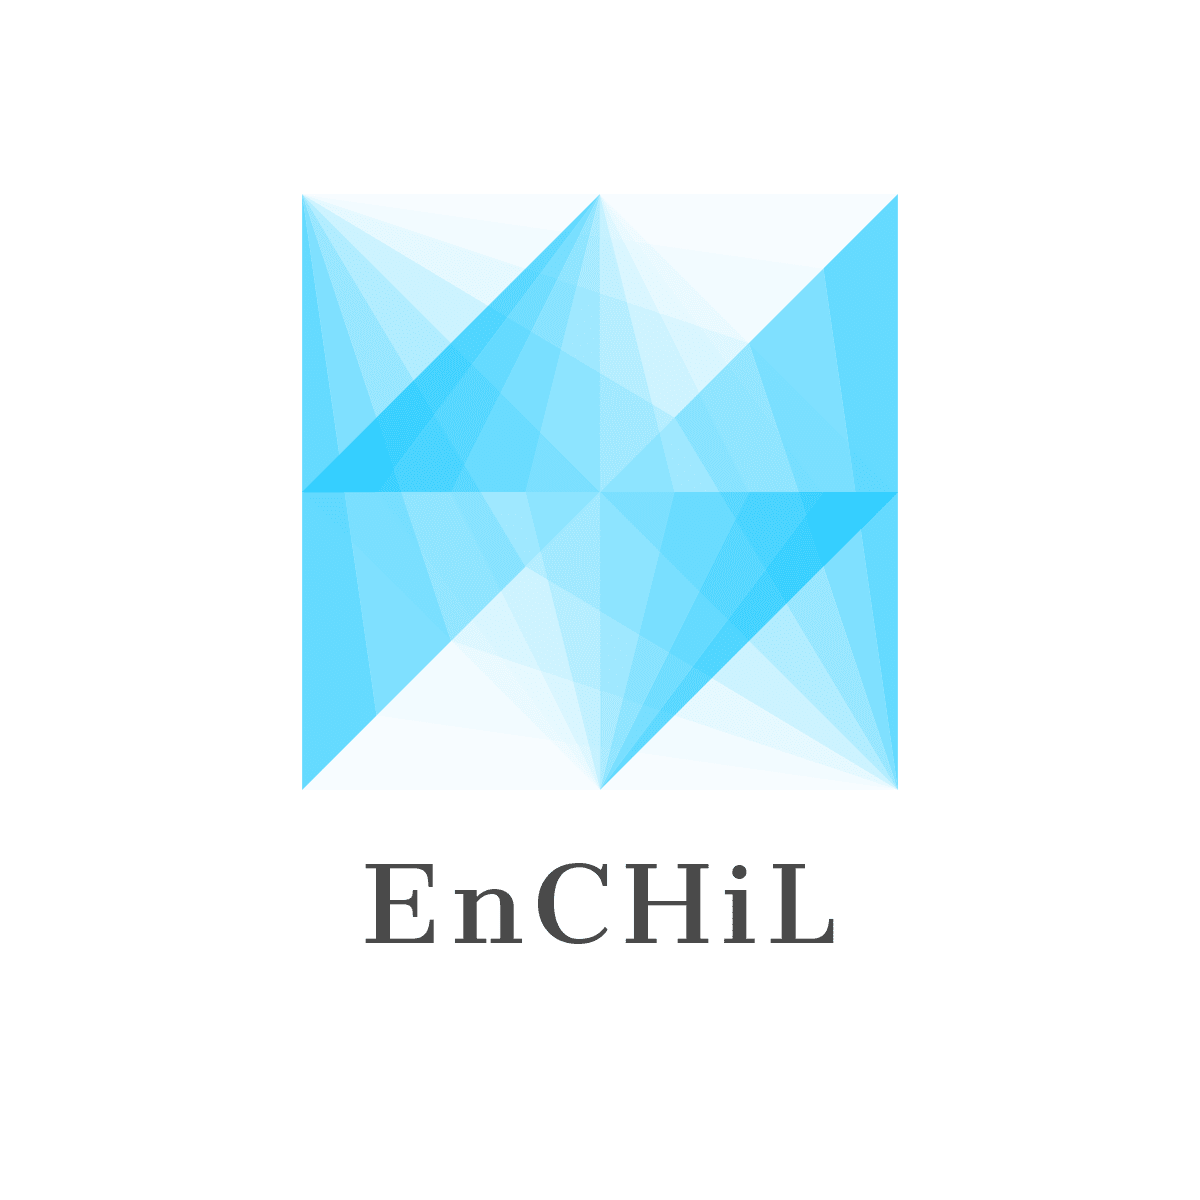 EnCHil.net